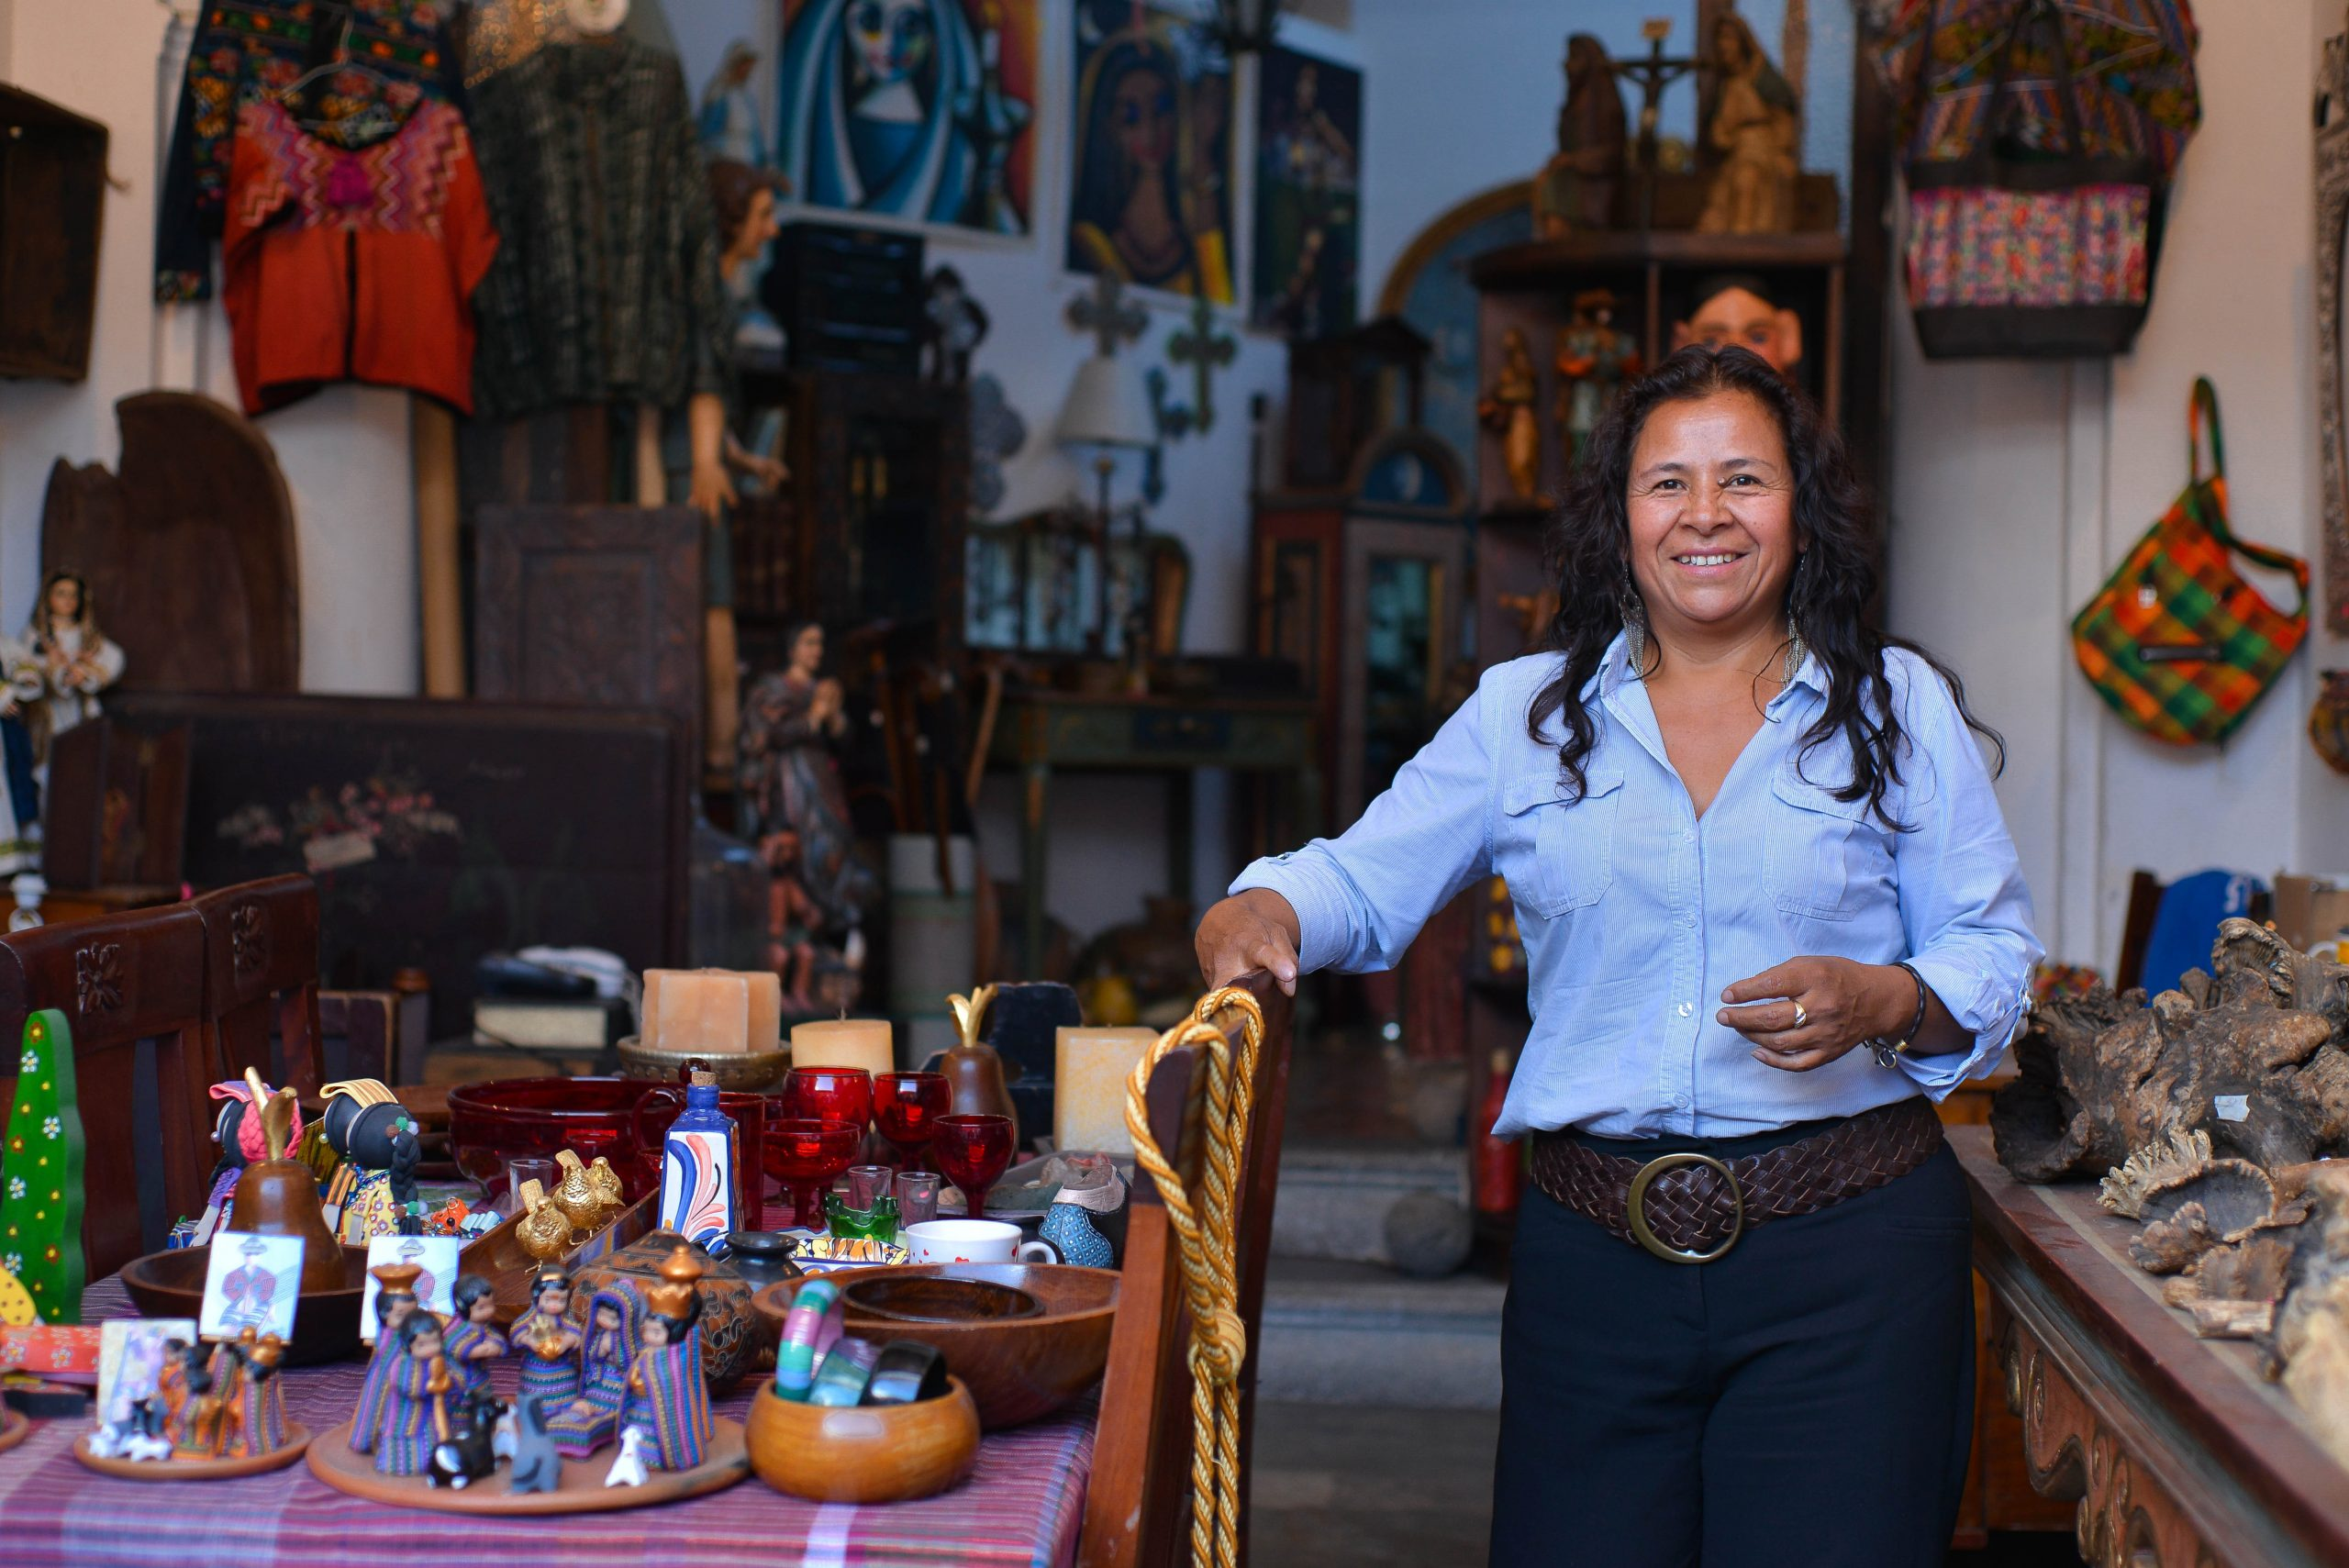 COVID-19 accelerates digitalization in low-income countries. In this photo, a small business owner in Latin America stands in her shop.